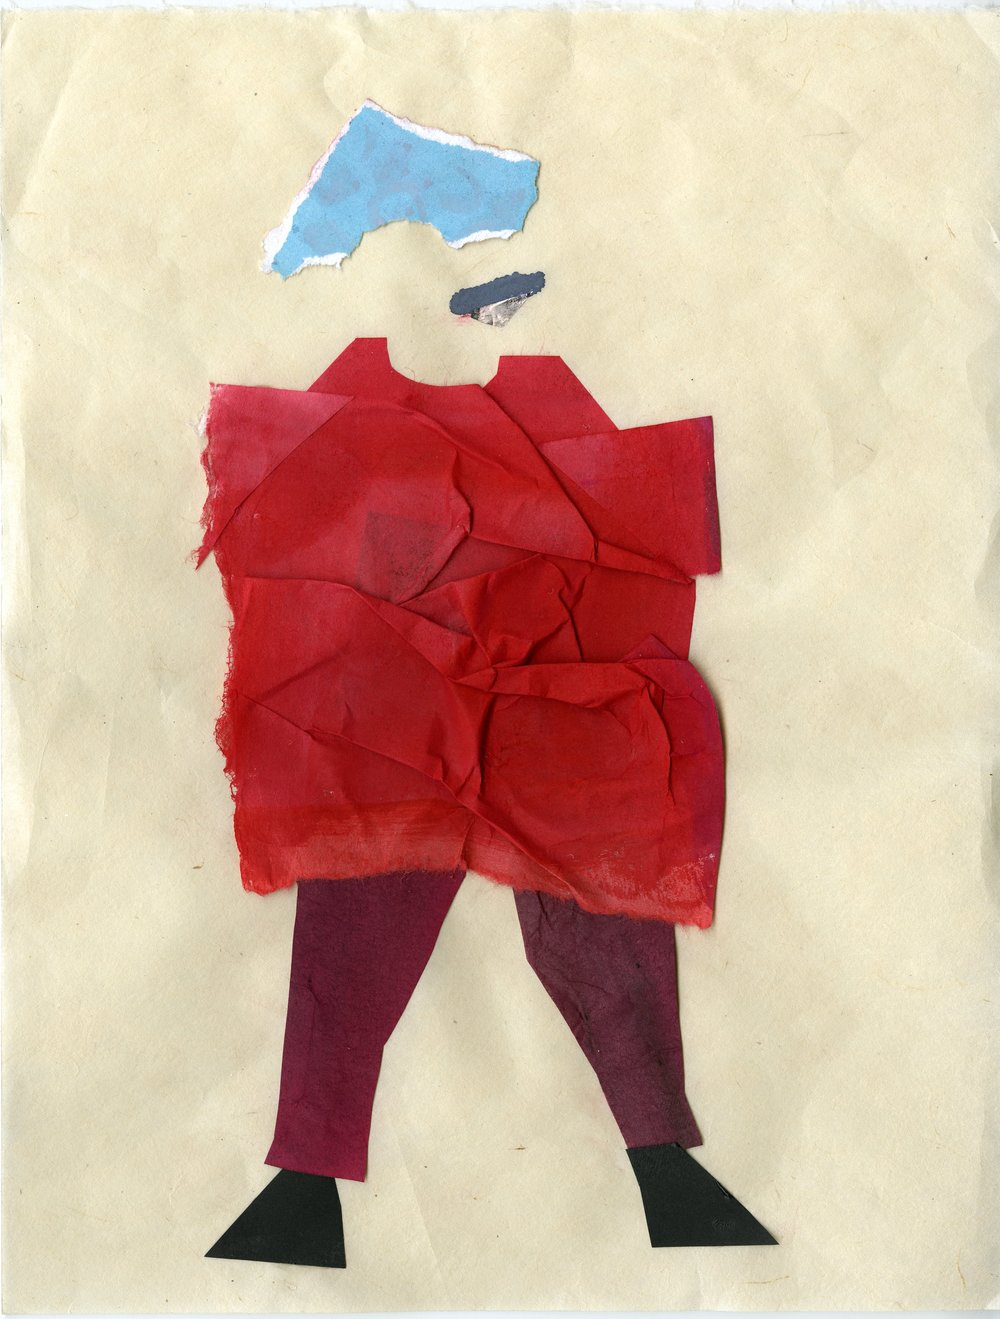 Lazy Sunday Sweater Boy   Gouache and Collage  2016